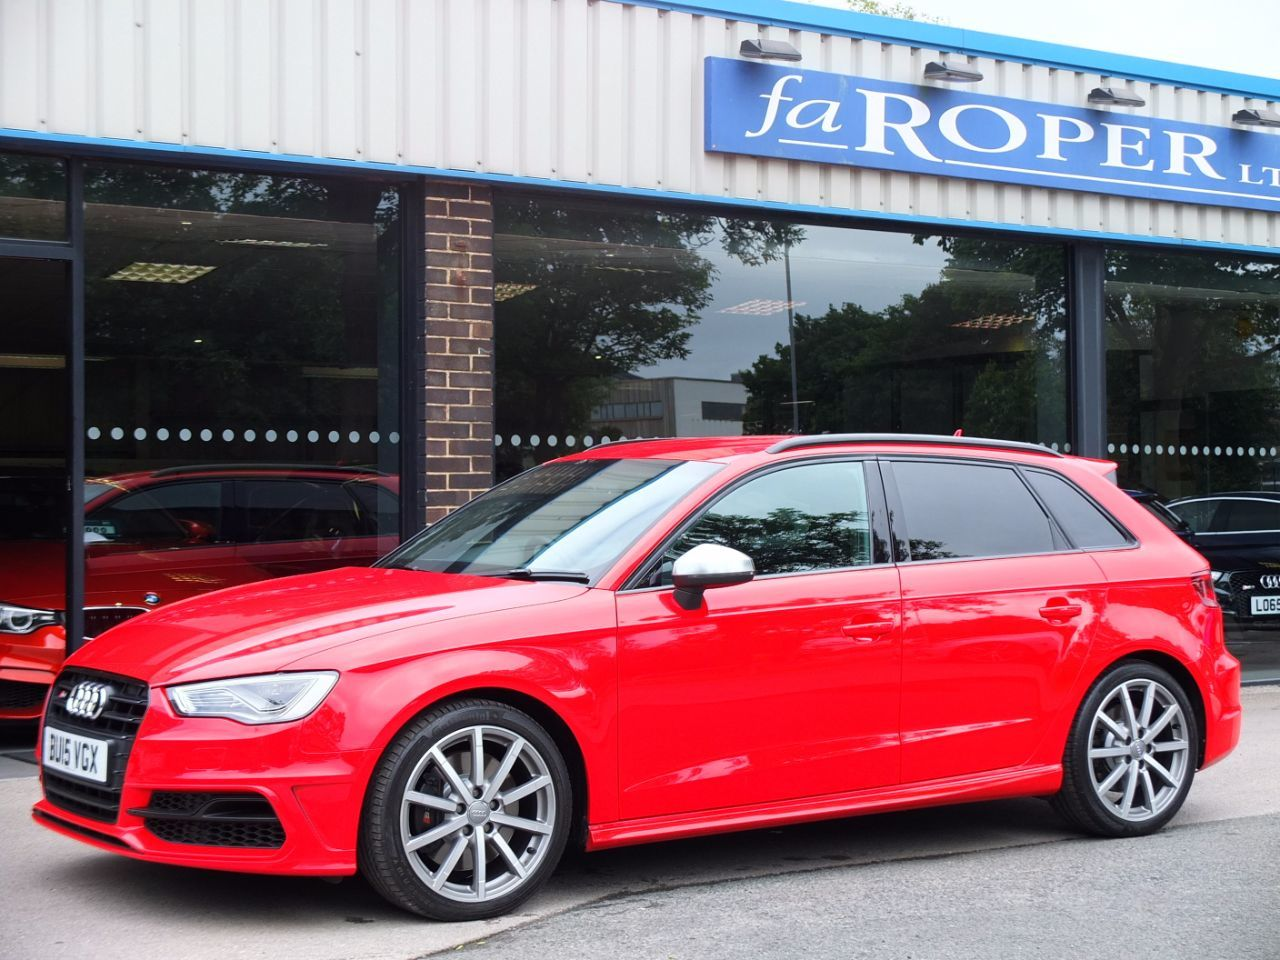 Audi A3 S3 Sportback 2.0 TFSI quattro S tronic Hatchback Petrol Misano Red Pearl